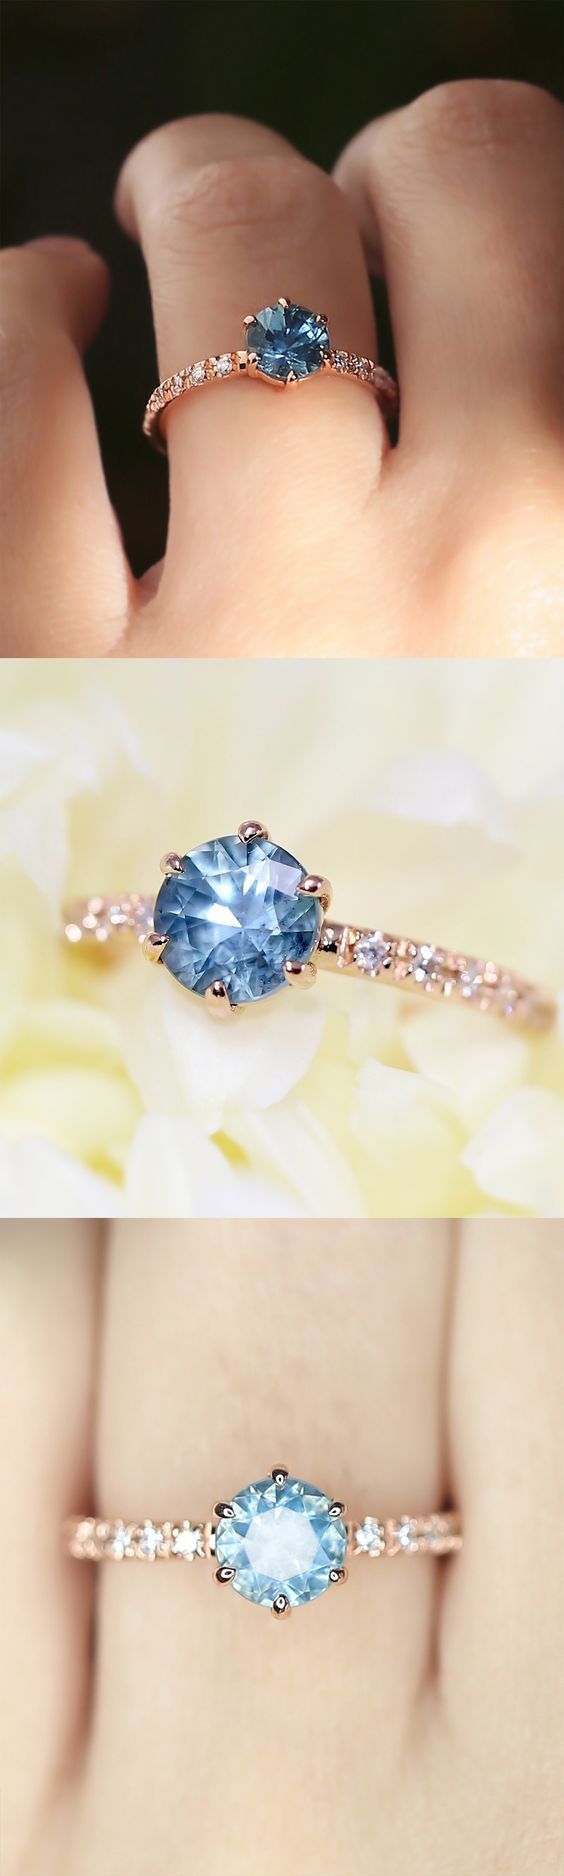 14k Yellow or White Gold Engagement rings for women – Nicole McVey